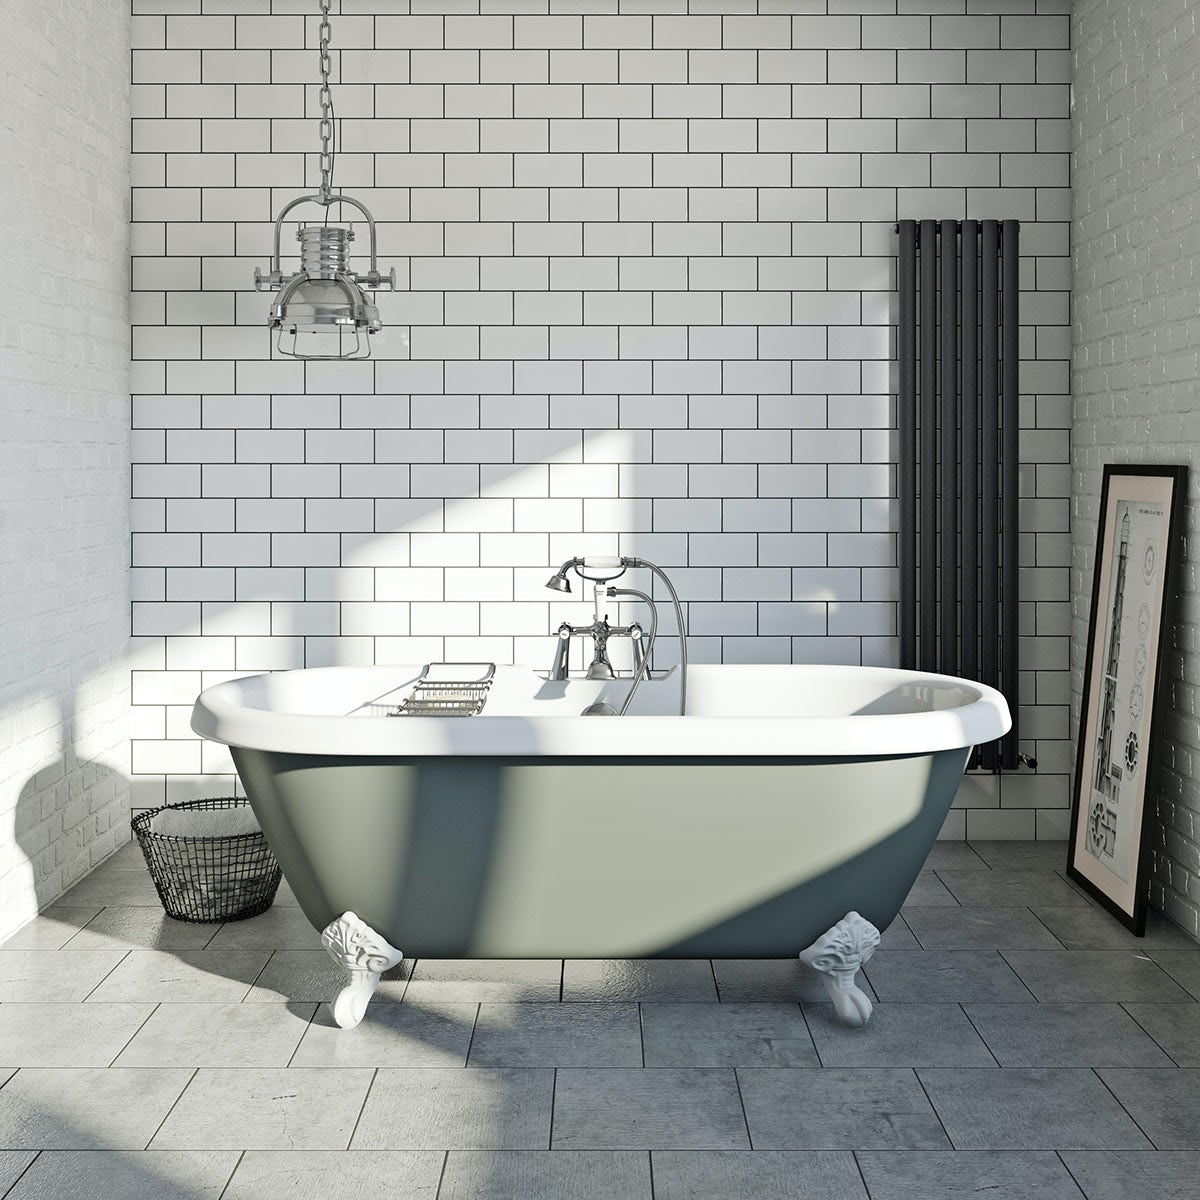 British ceramic tile metropolis mid grey matt tile 331mm x 331mm british ceramic tile metropolis mid grey matt tile 331mm x 331mm dailygadgetfo Choice Image